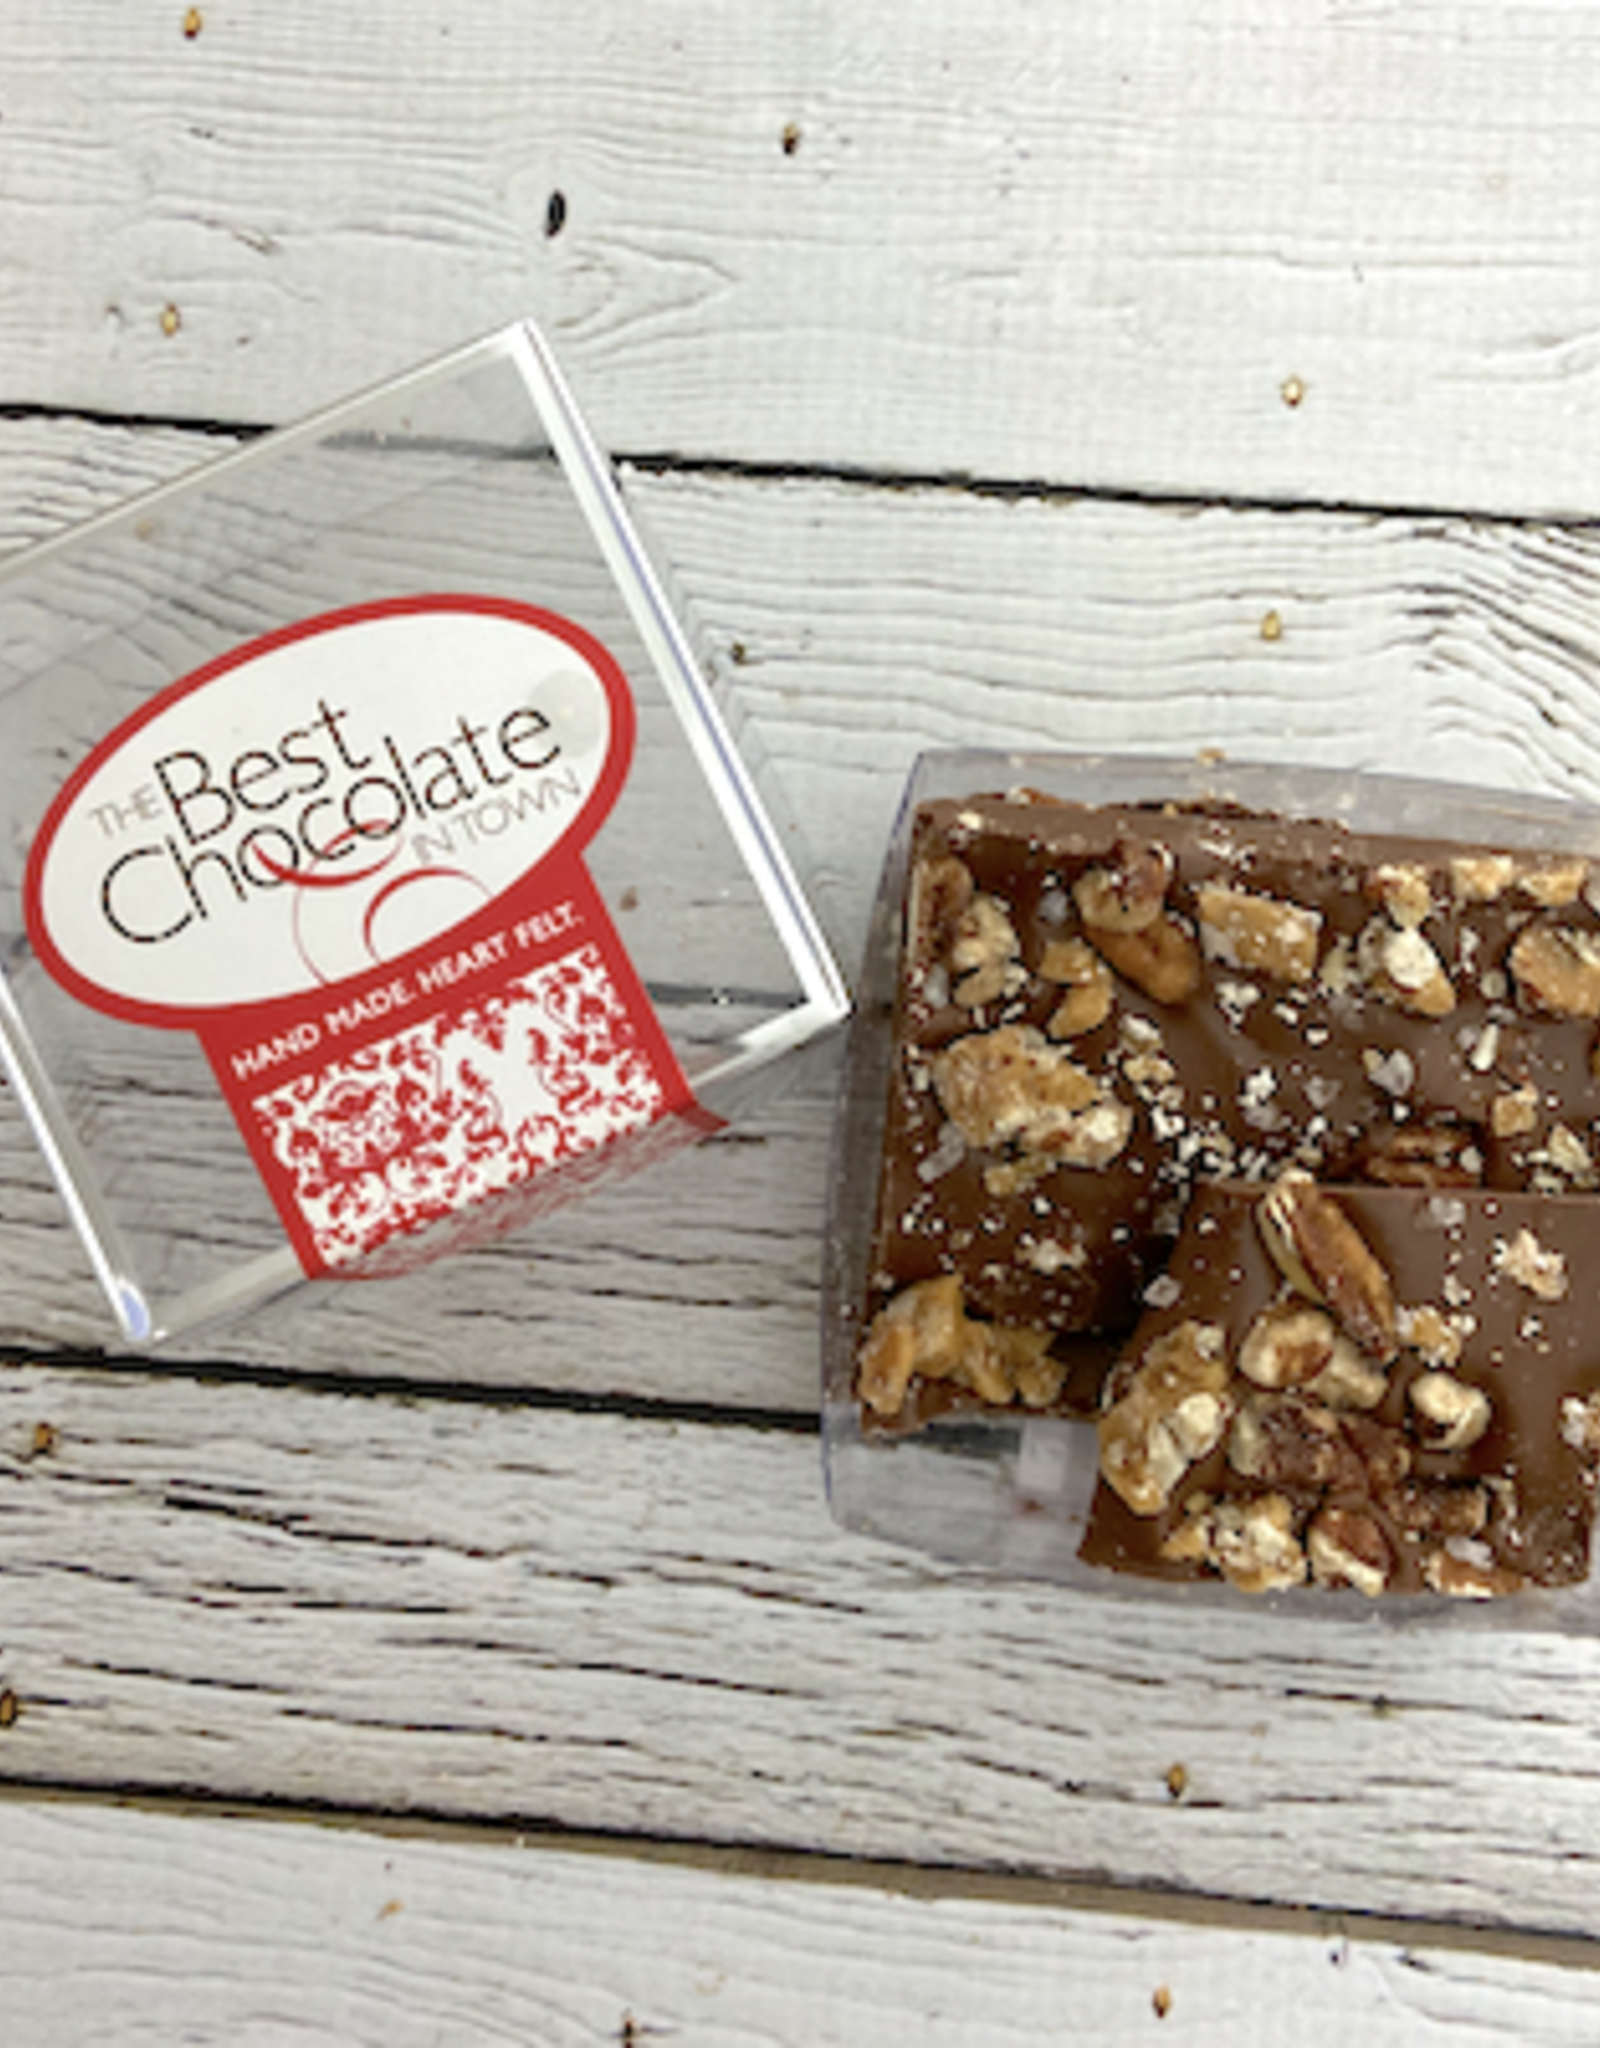 BESTCHOC Chocolate Salted Turtle Bark from Best Chocolate in Town